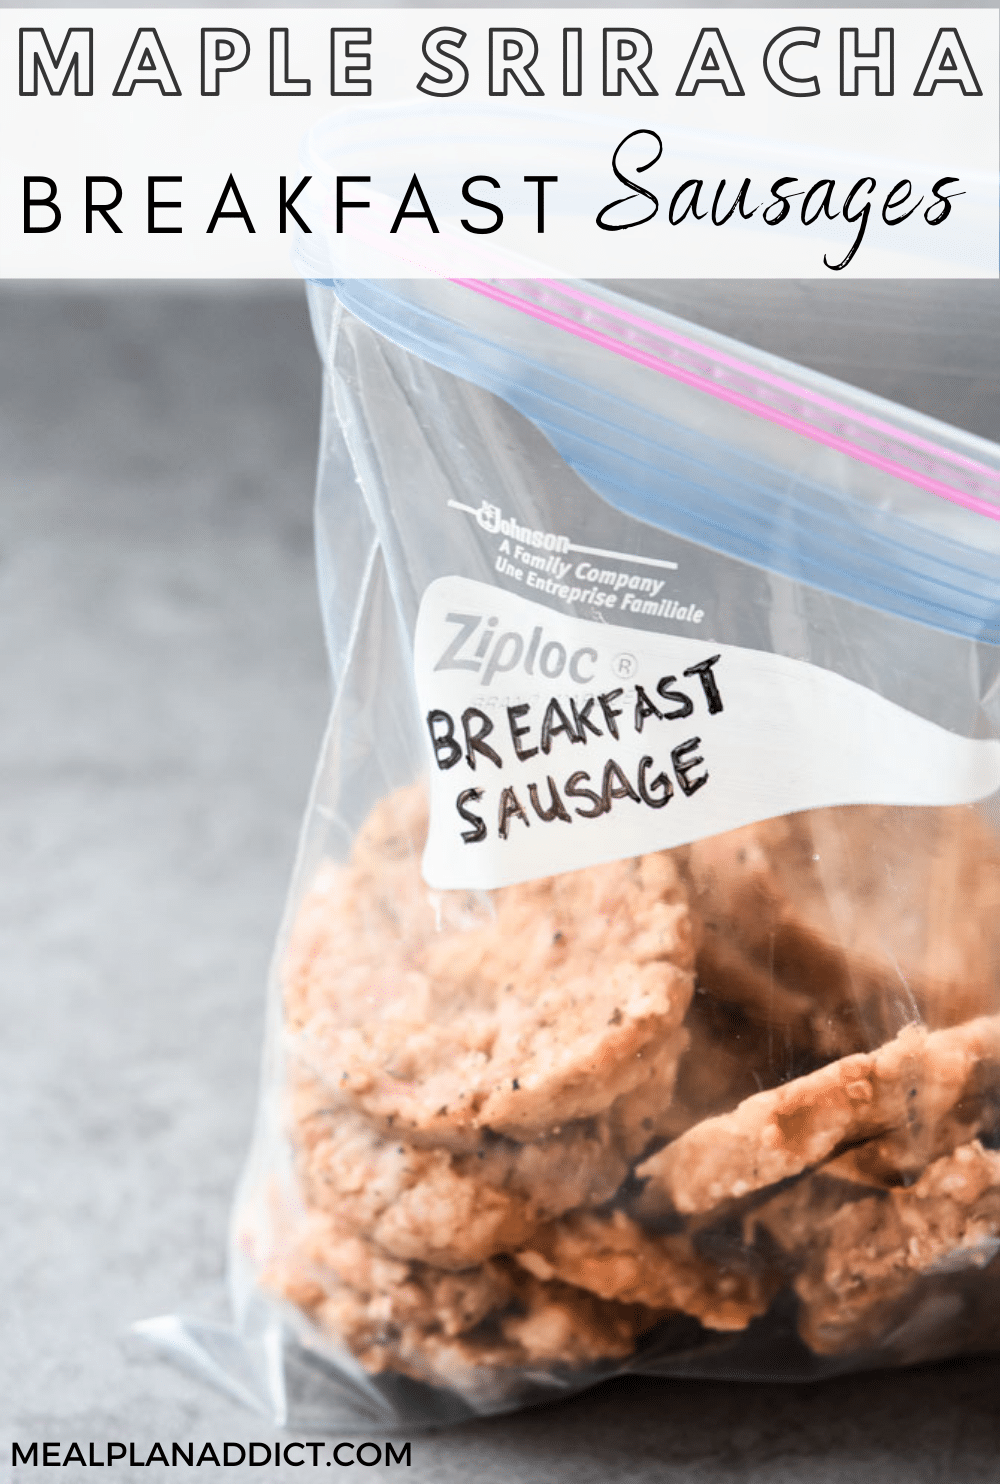 Breakfast Sausage pin for Pinterest